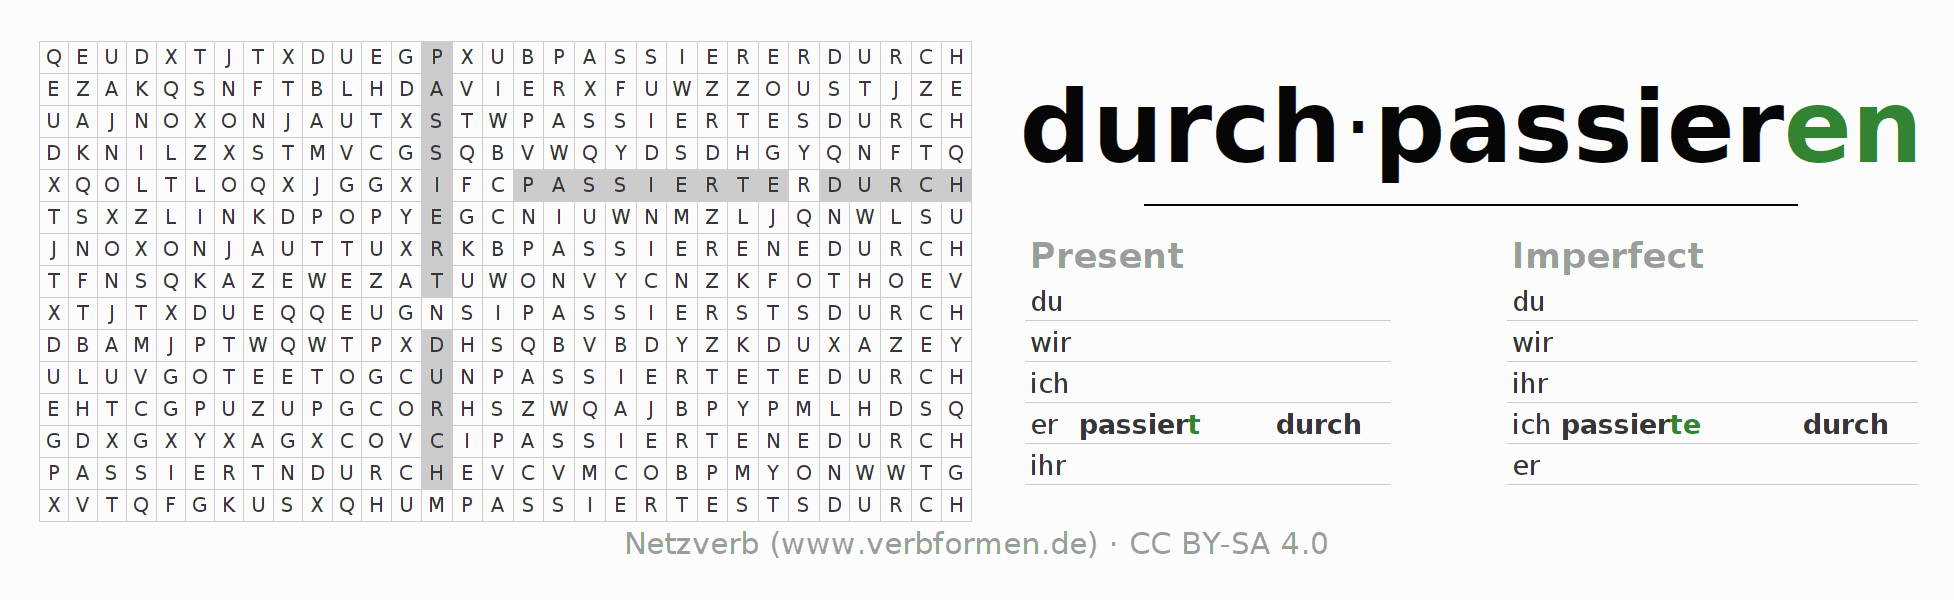 Word search puzzle for the conjugation of the verb durchpassieren